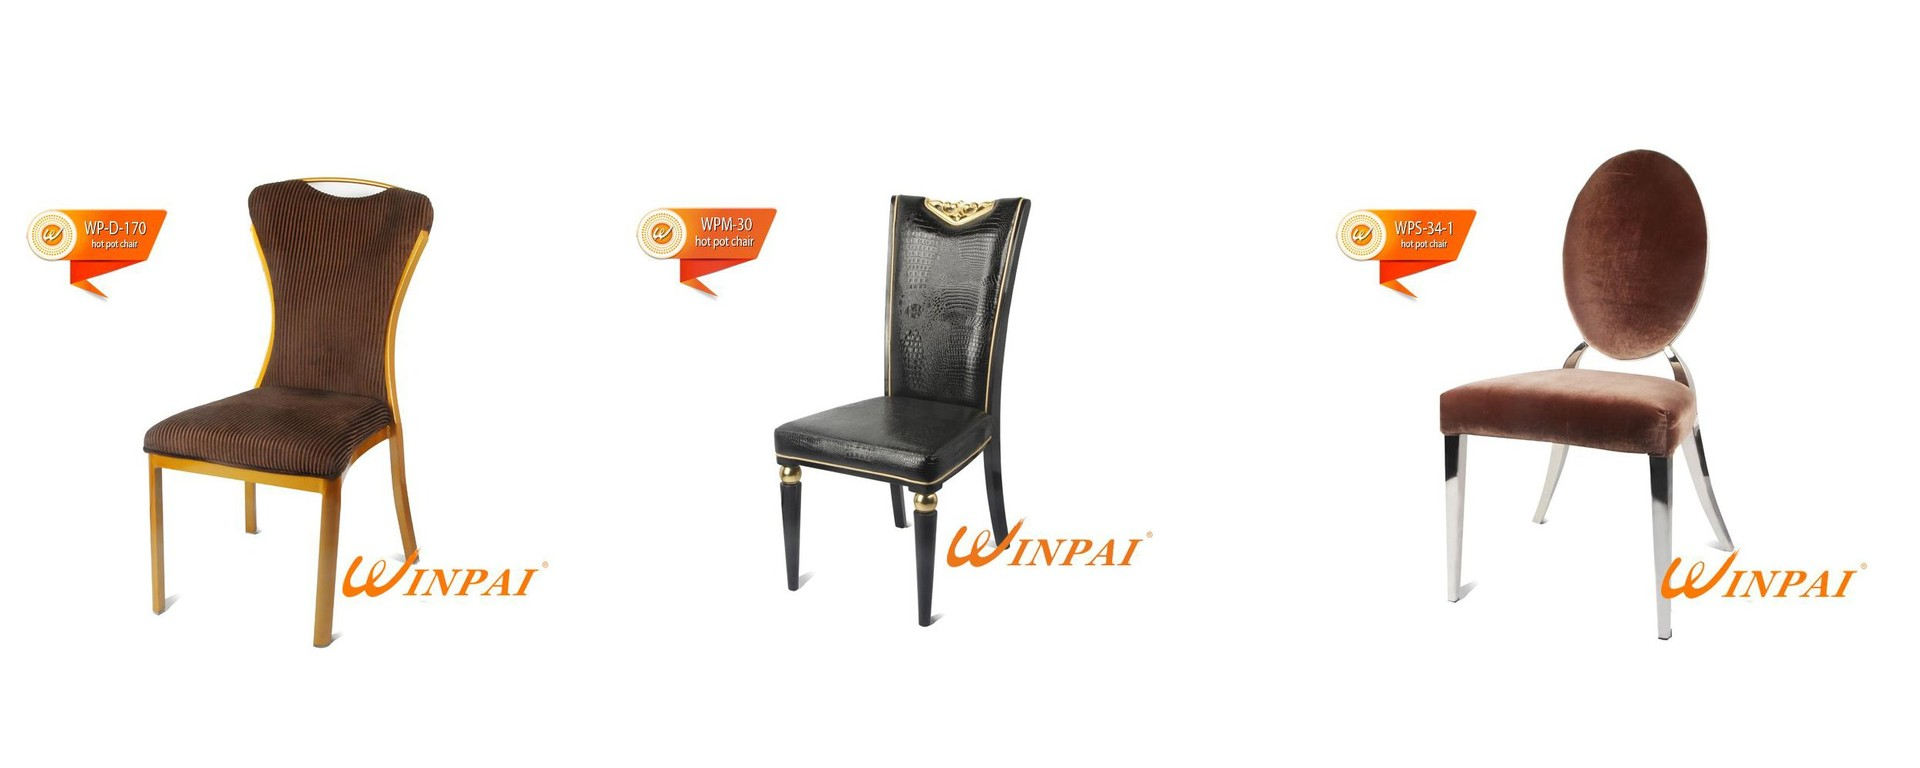 professional metal restaurant chairs series for dinning room